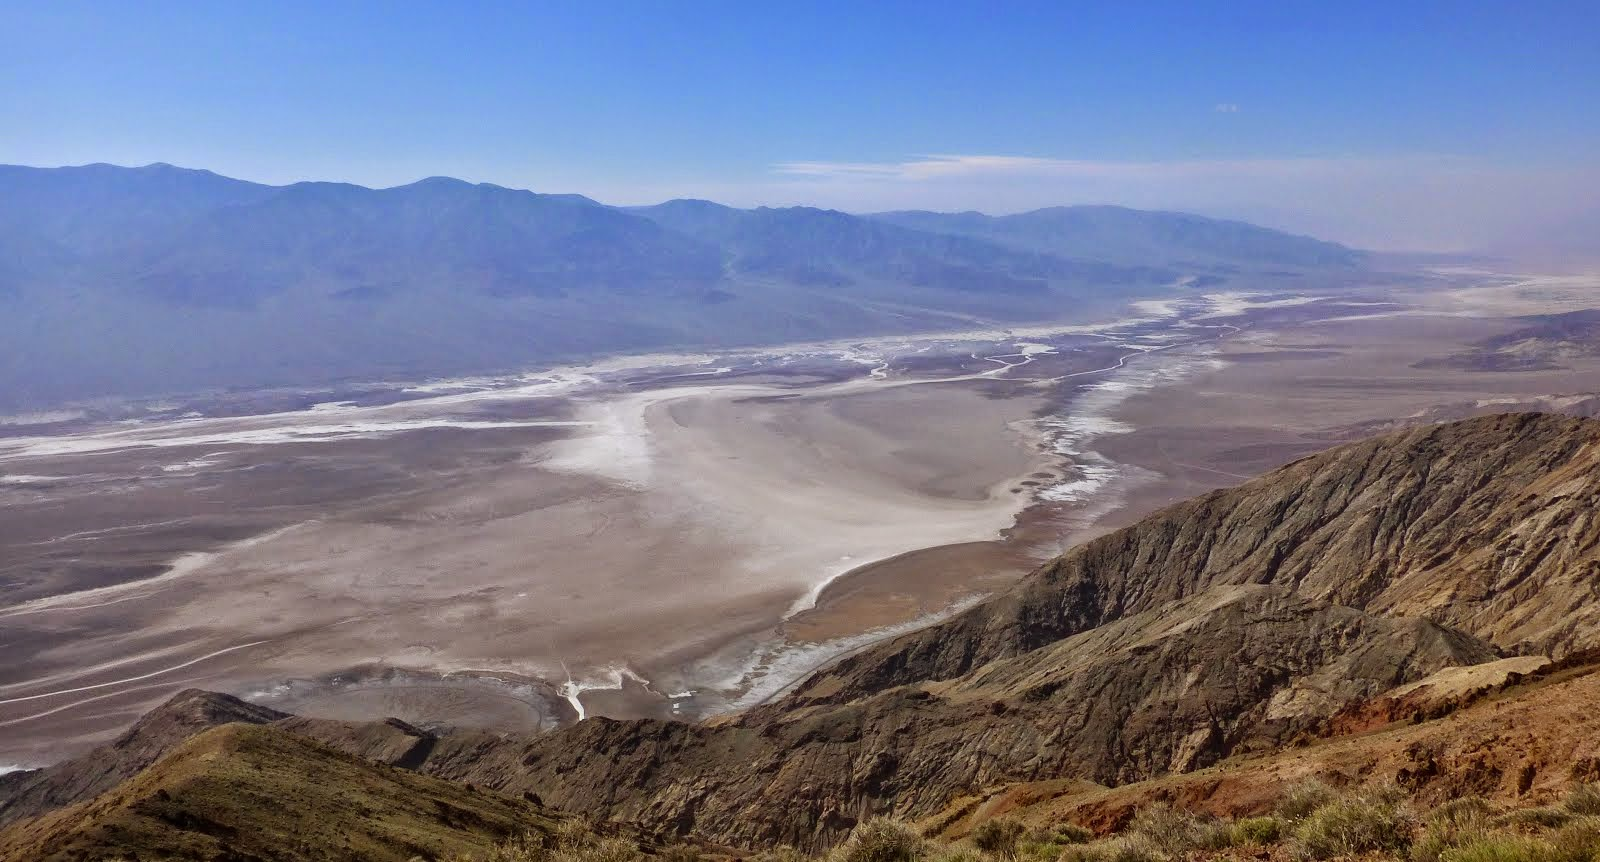 A Dry Spring in Death Valley